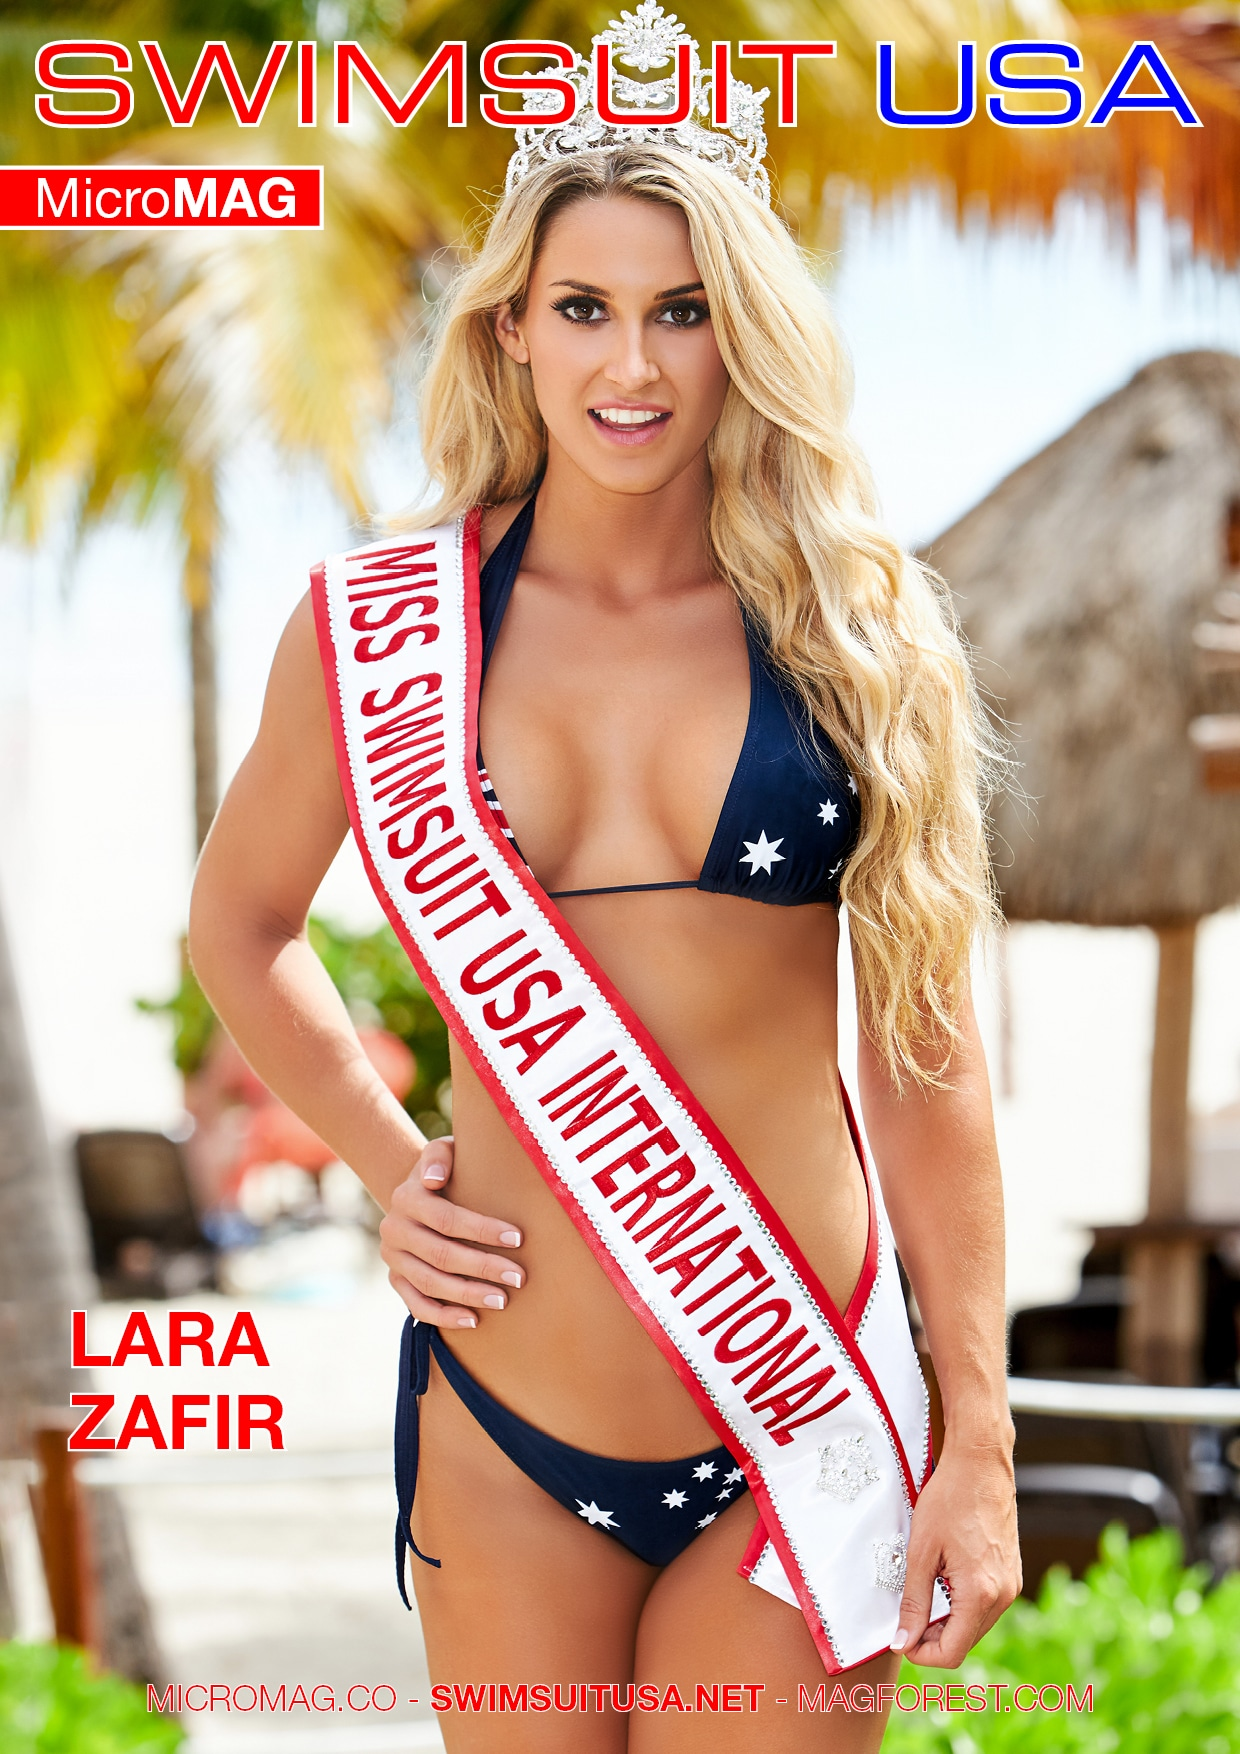 Swimsuit USA MicroMAG - Julie Gauthier - Issue 2 3